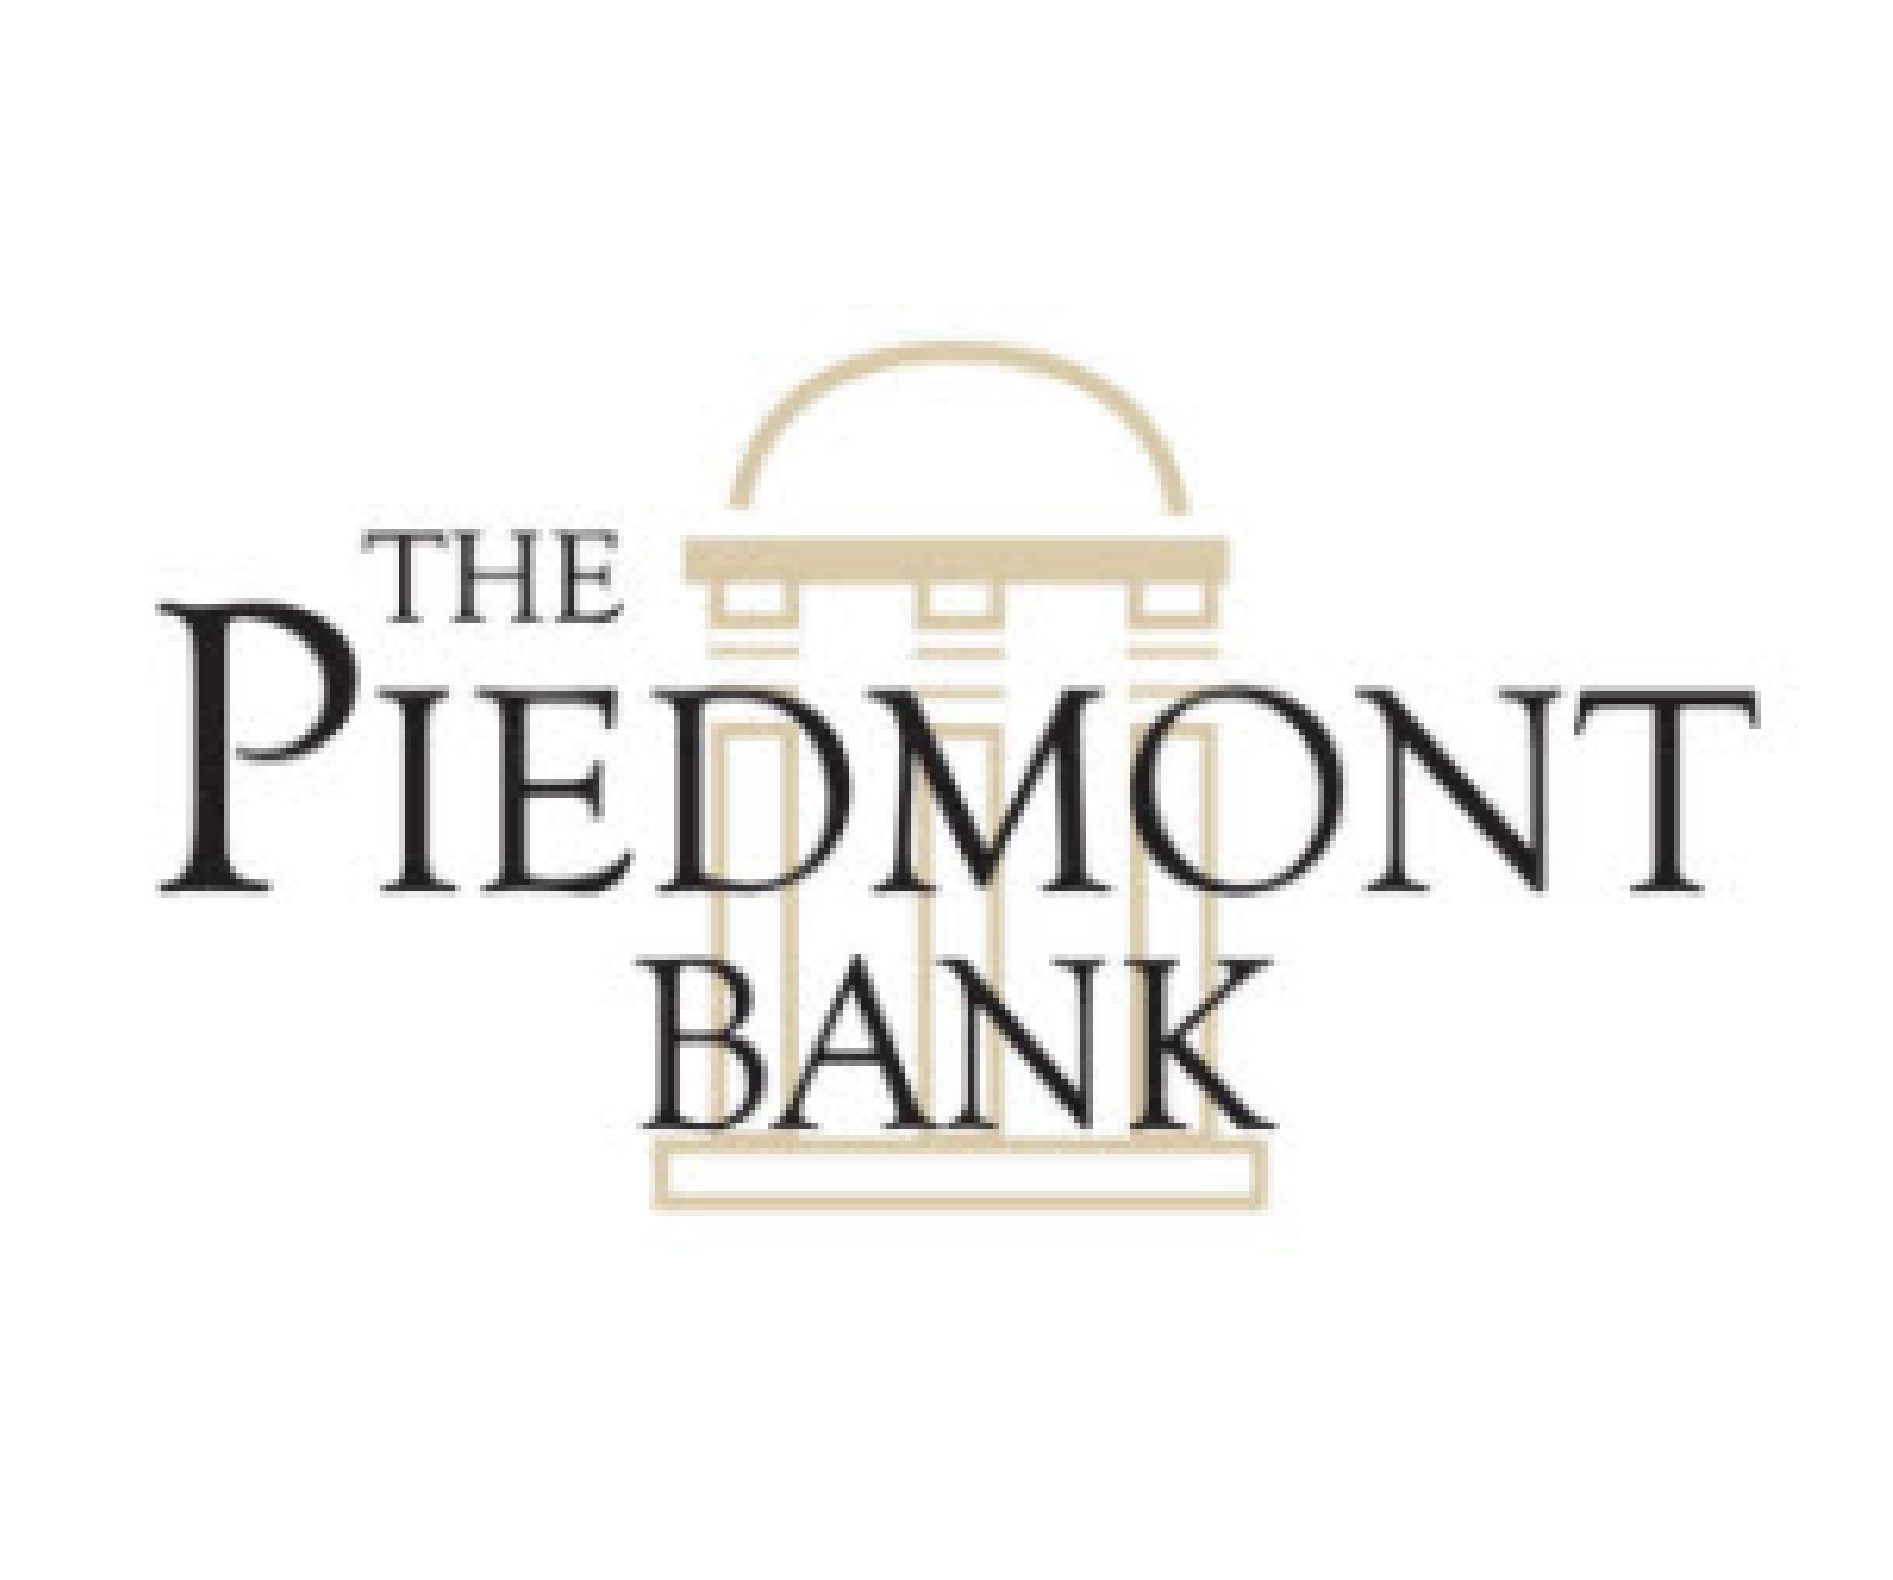 https://piedmont.bank/